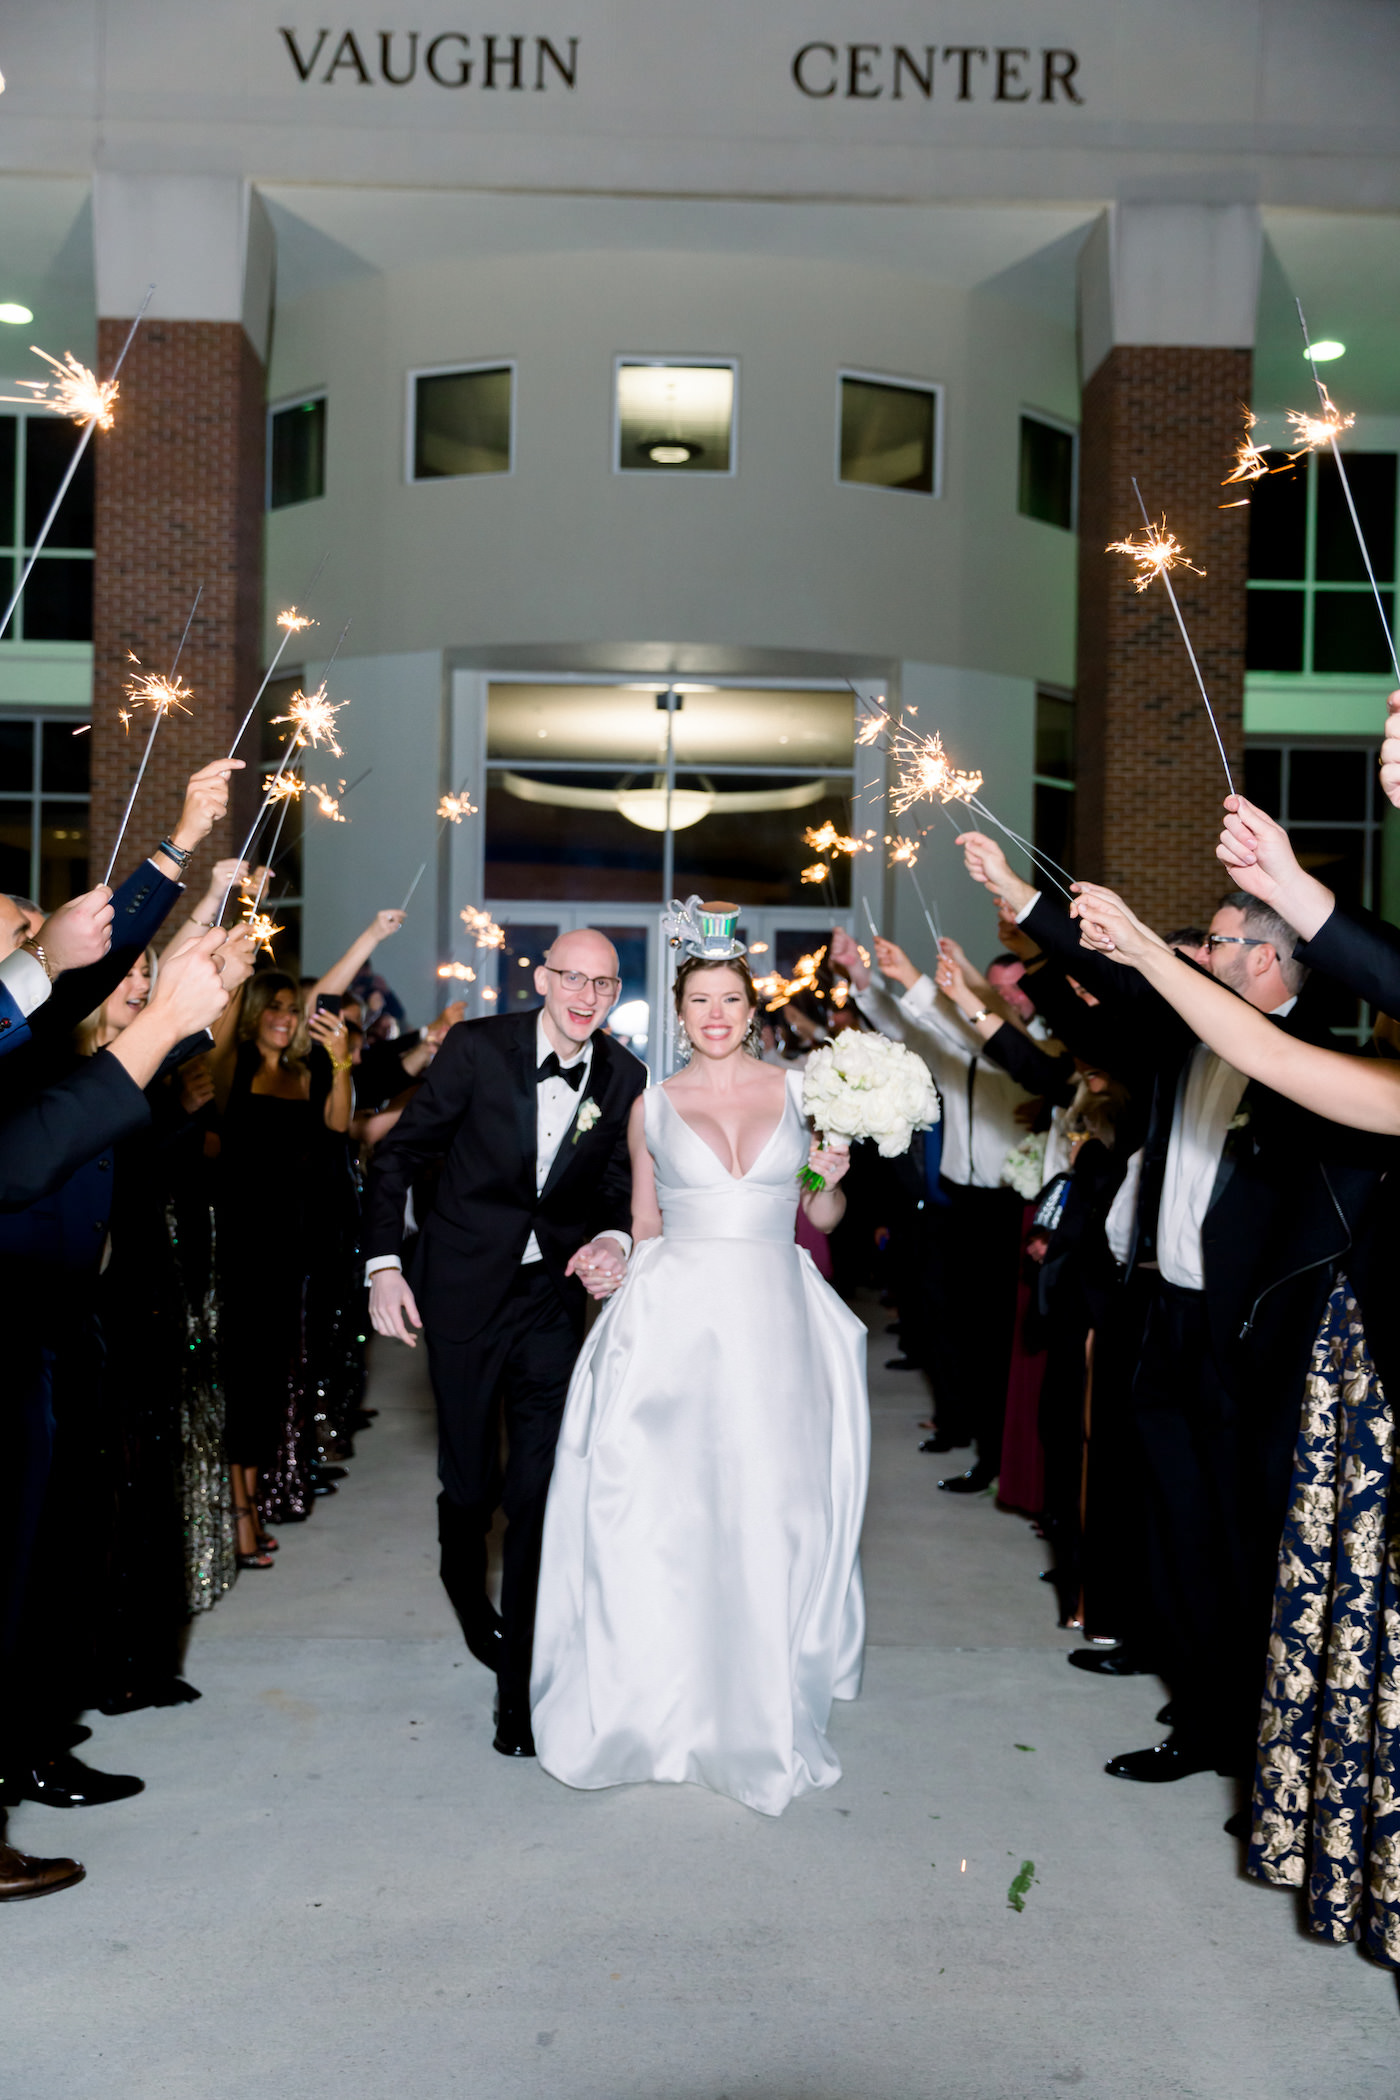 Formal New Year's Eve Bride and Groom Exiting Reception | Wedding Photographer Shauna and Jordon Photography | Tampa Bay Wedding Planner UNIQUE Weddings + Events